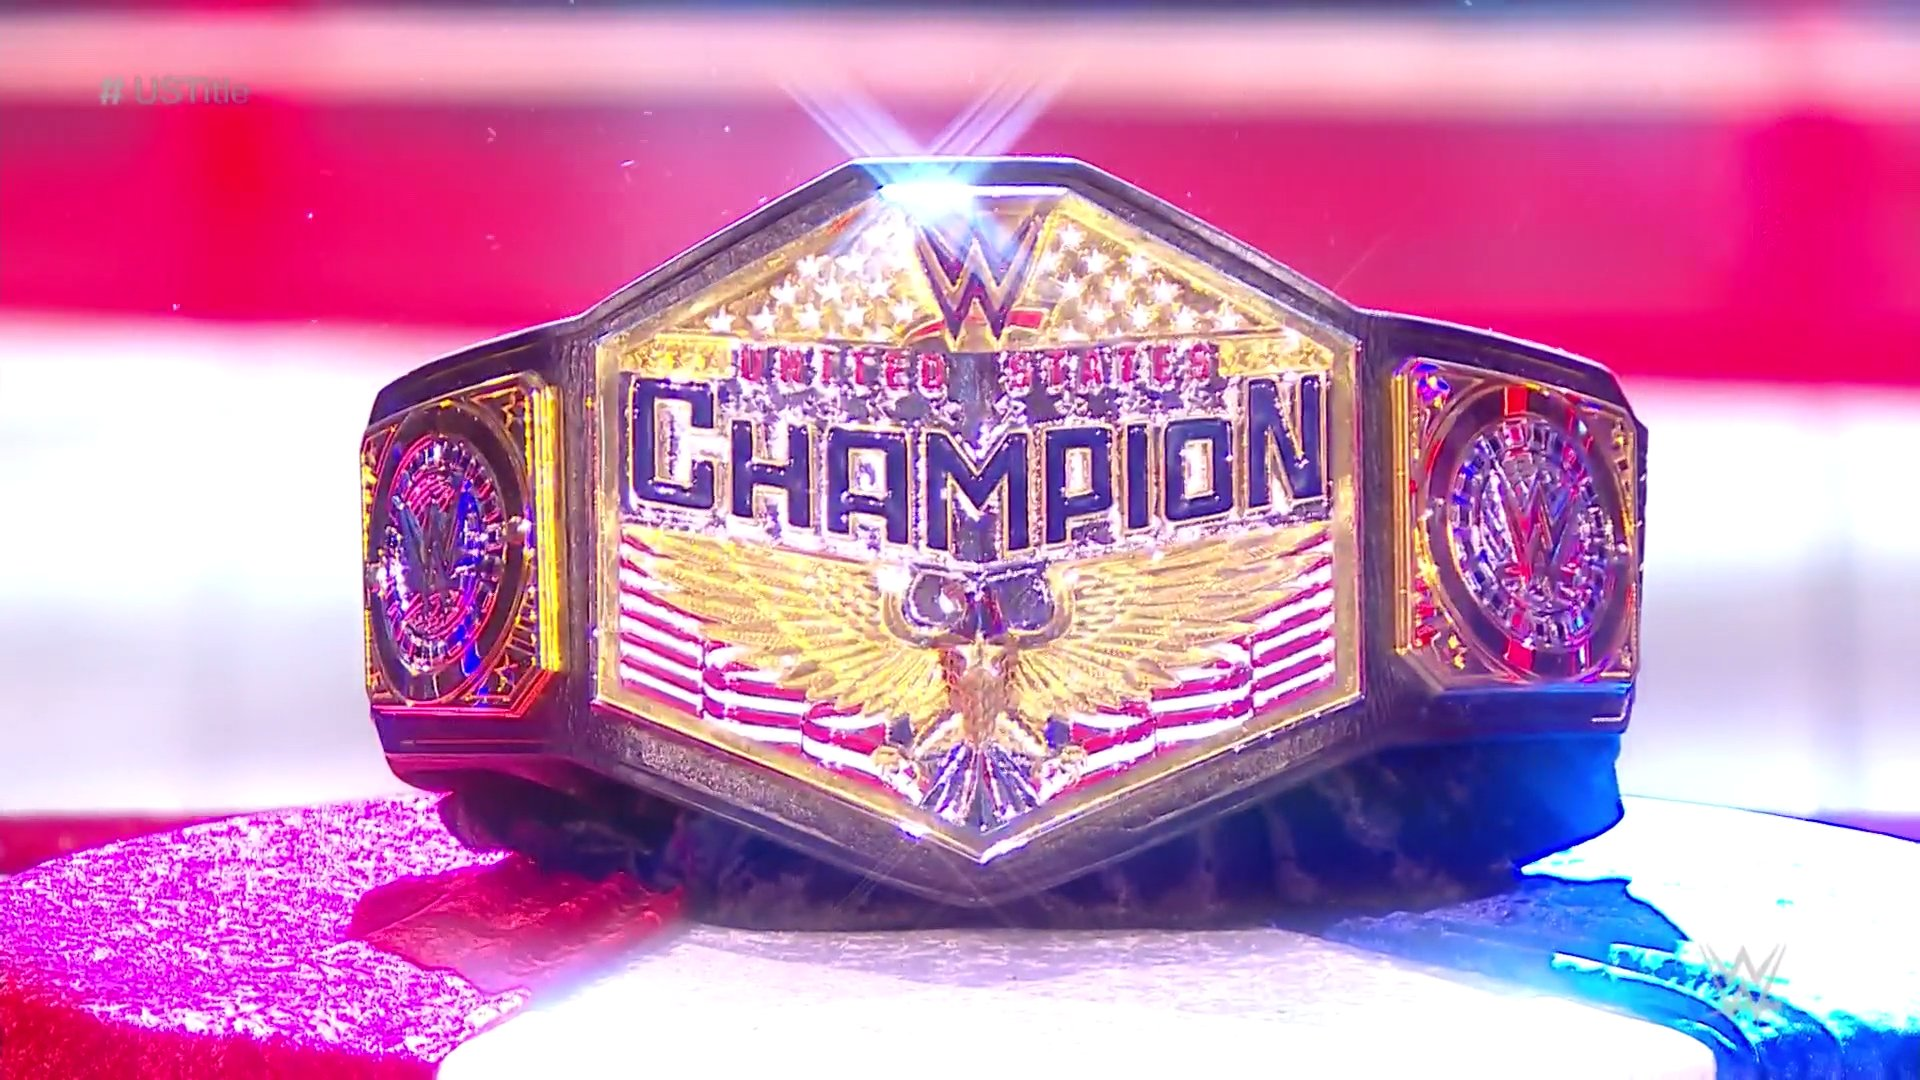 WWE Extreme Rules 2020: New Title Match Announced On Raw 2